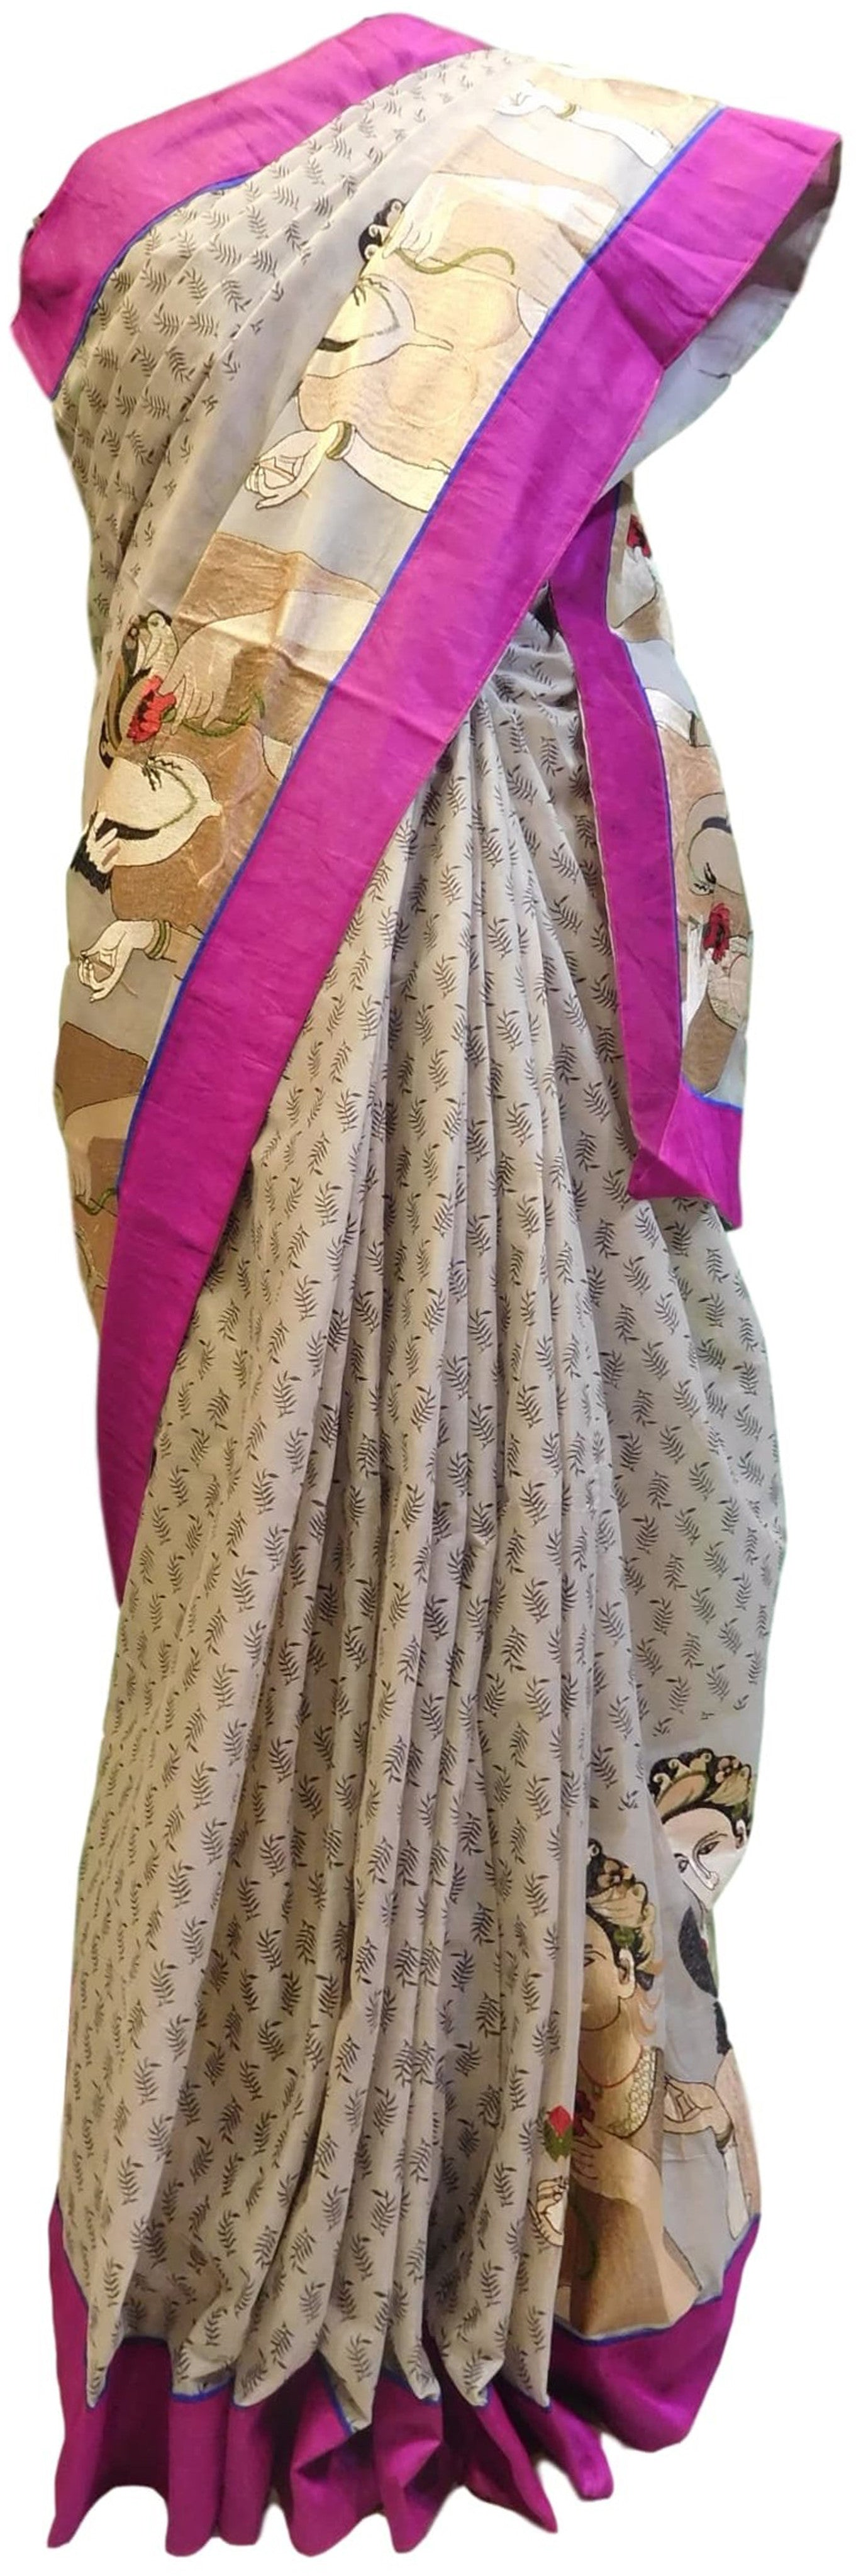 White Designer Pure Cotton Thread Embroidery Printed Sari With Merron Border Saree